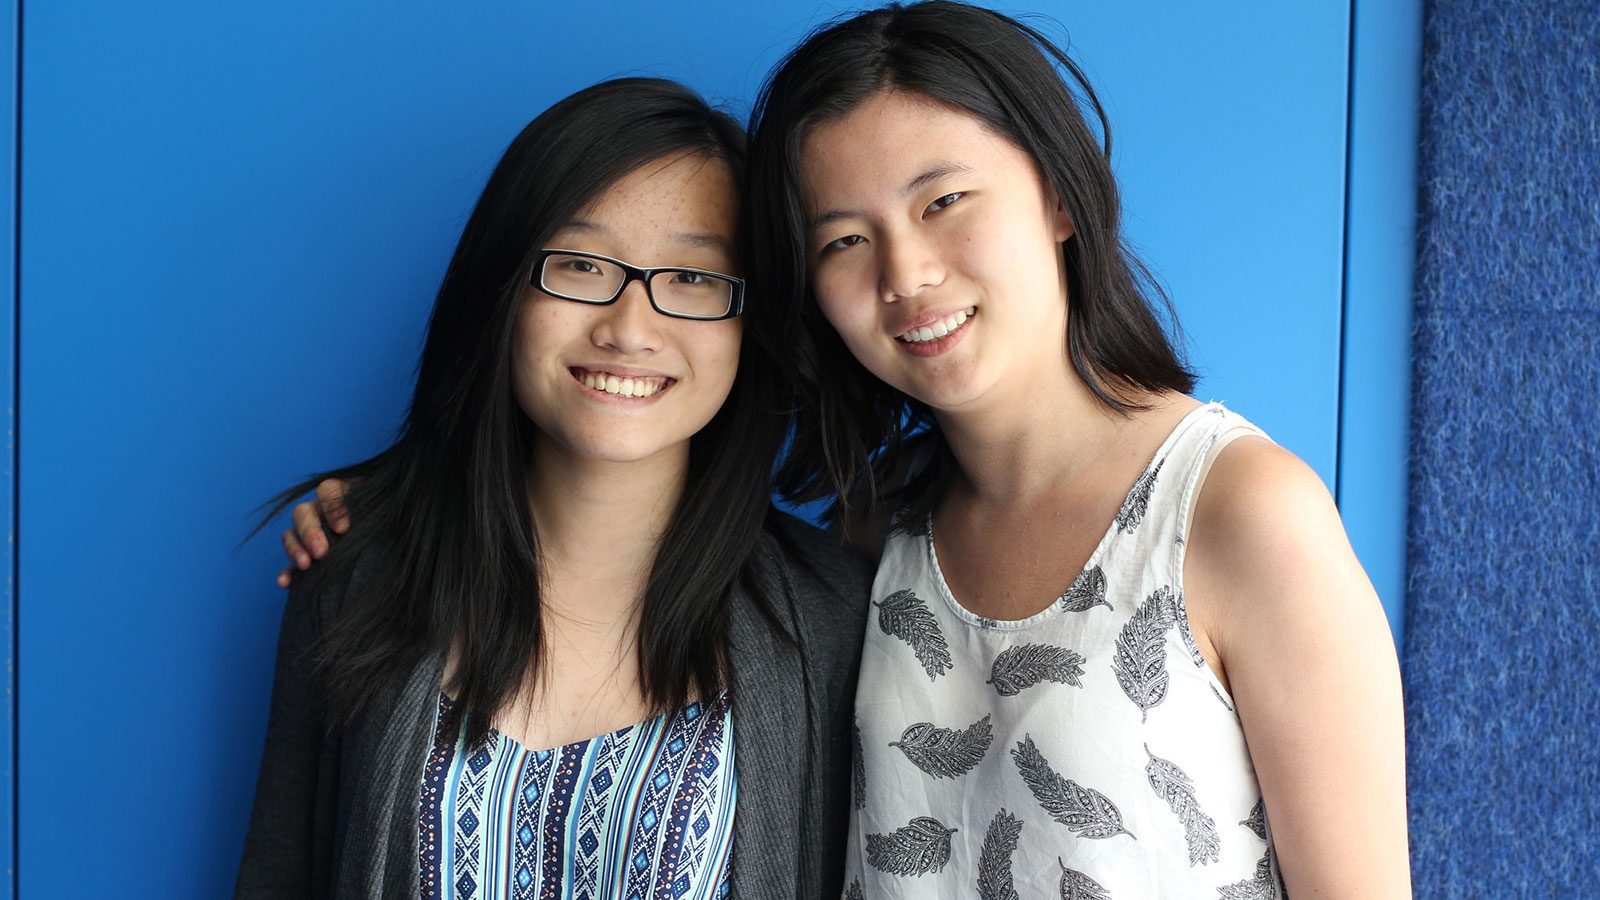 Photo of two students smiling.